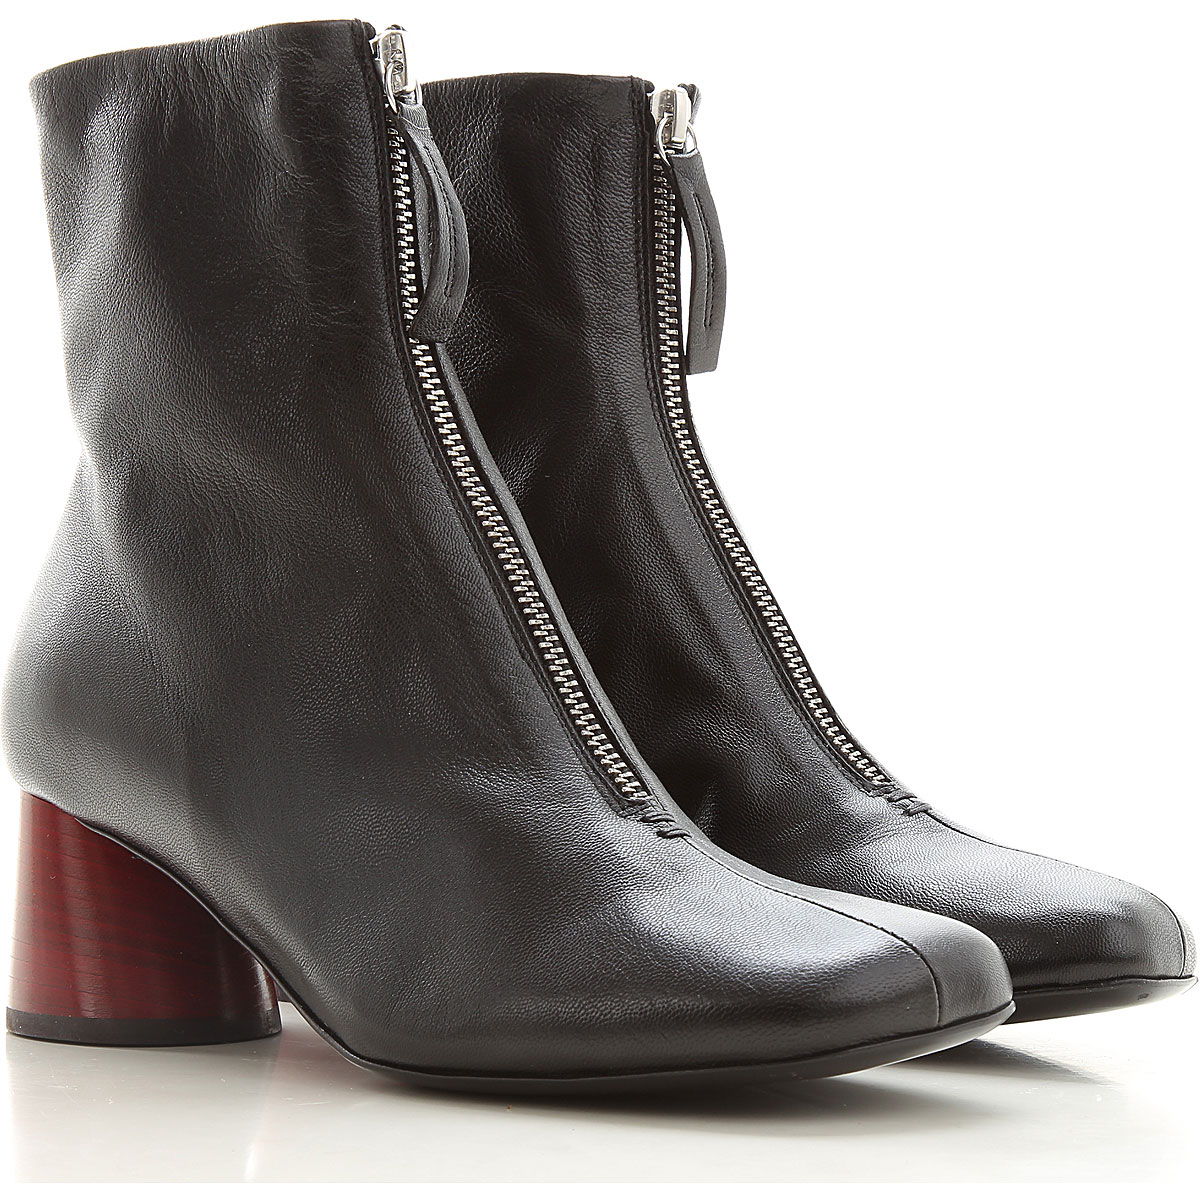 Halmanera Boots for Women, Booties, Black, Leather, 2019, 6 9